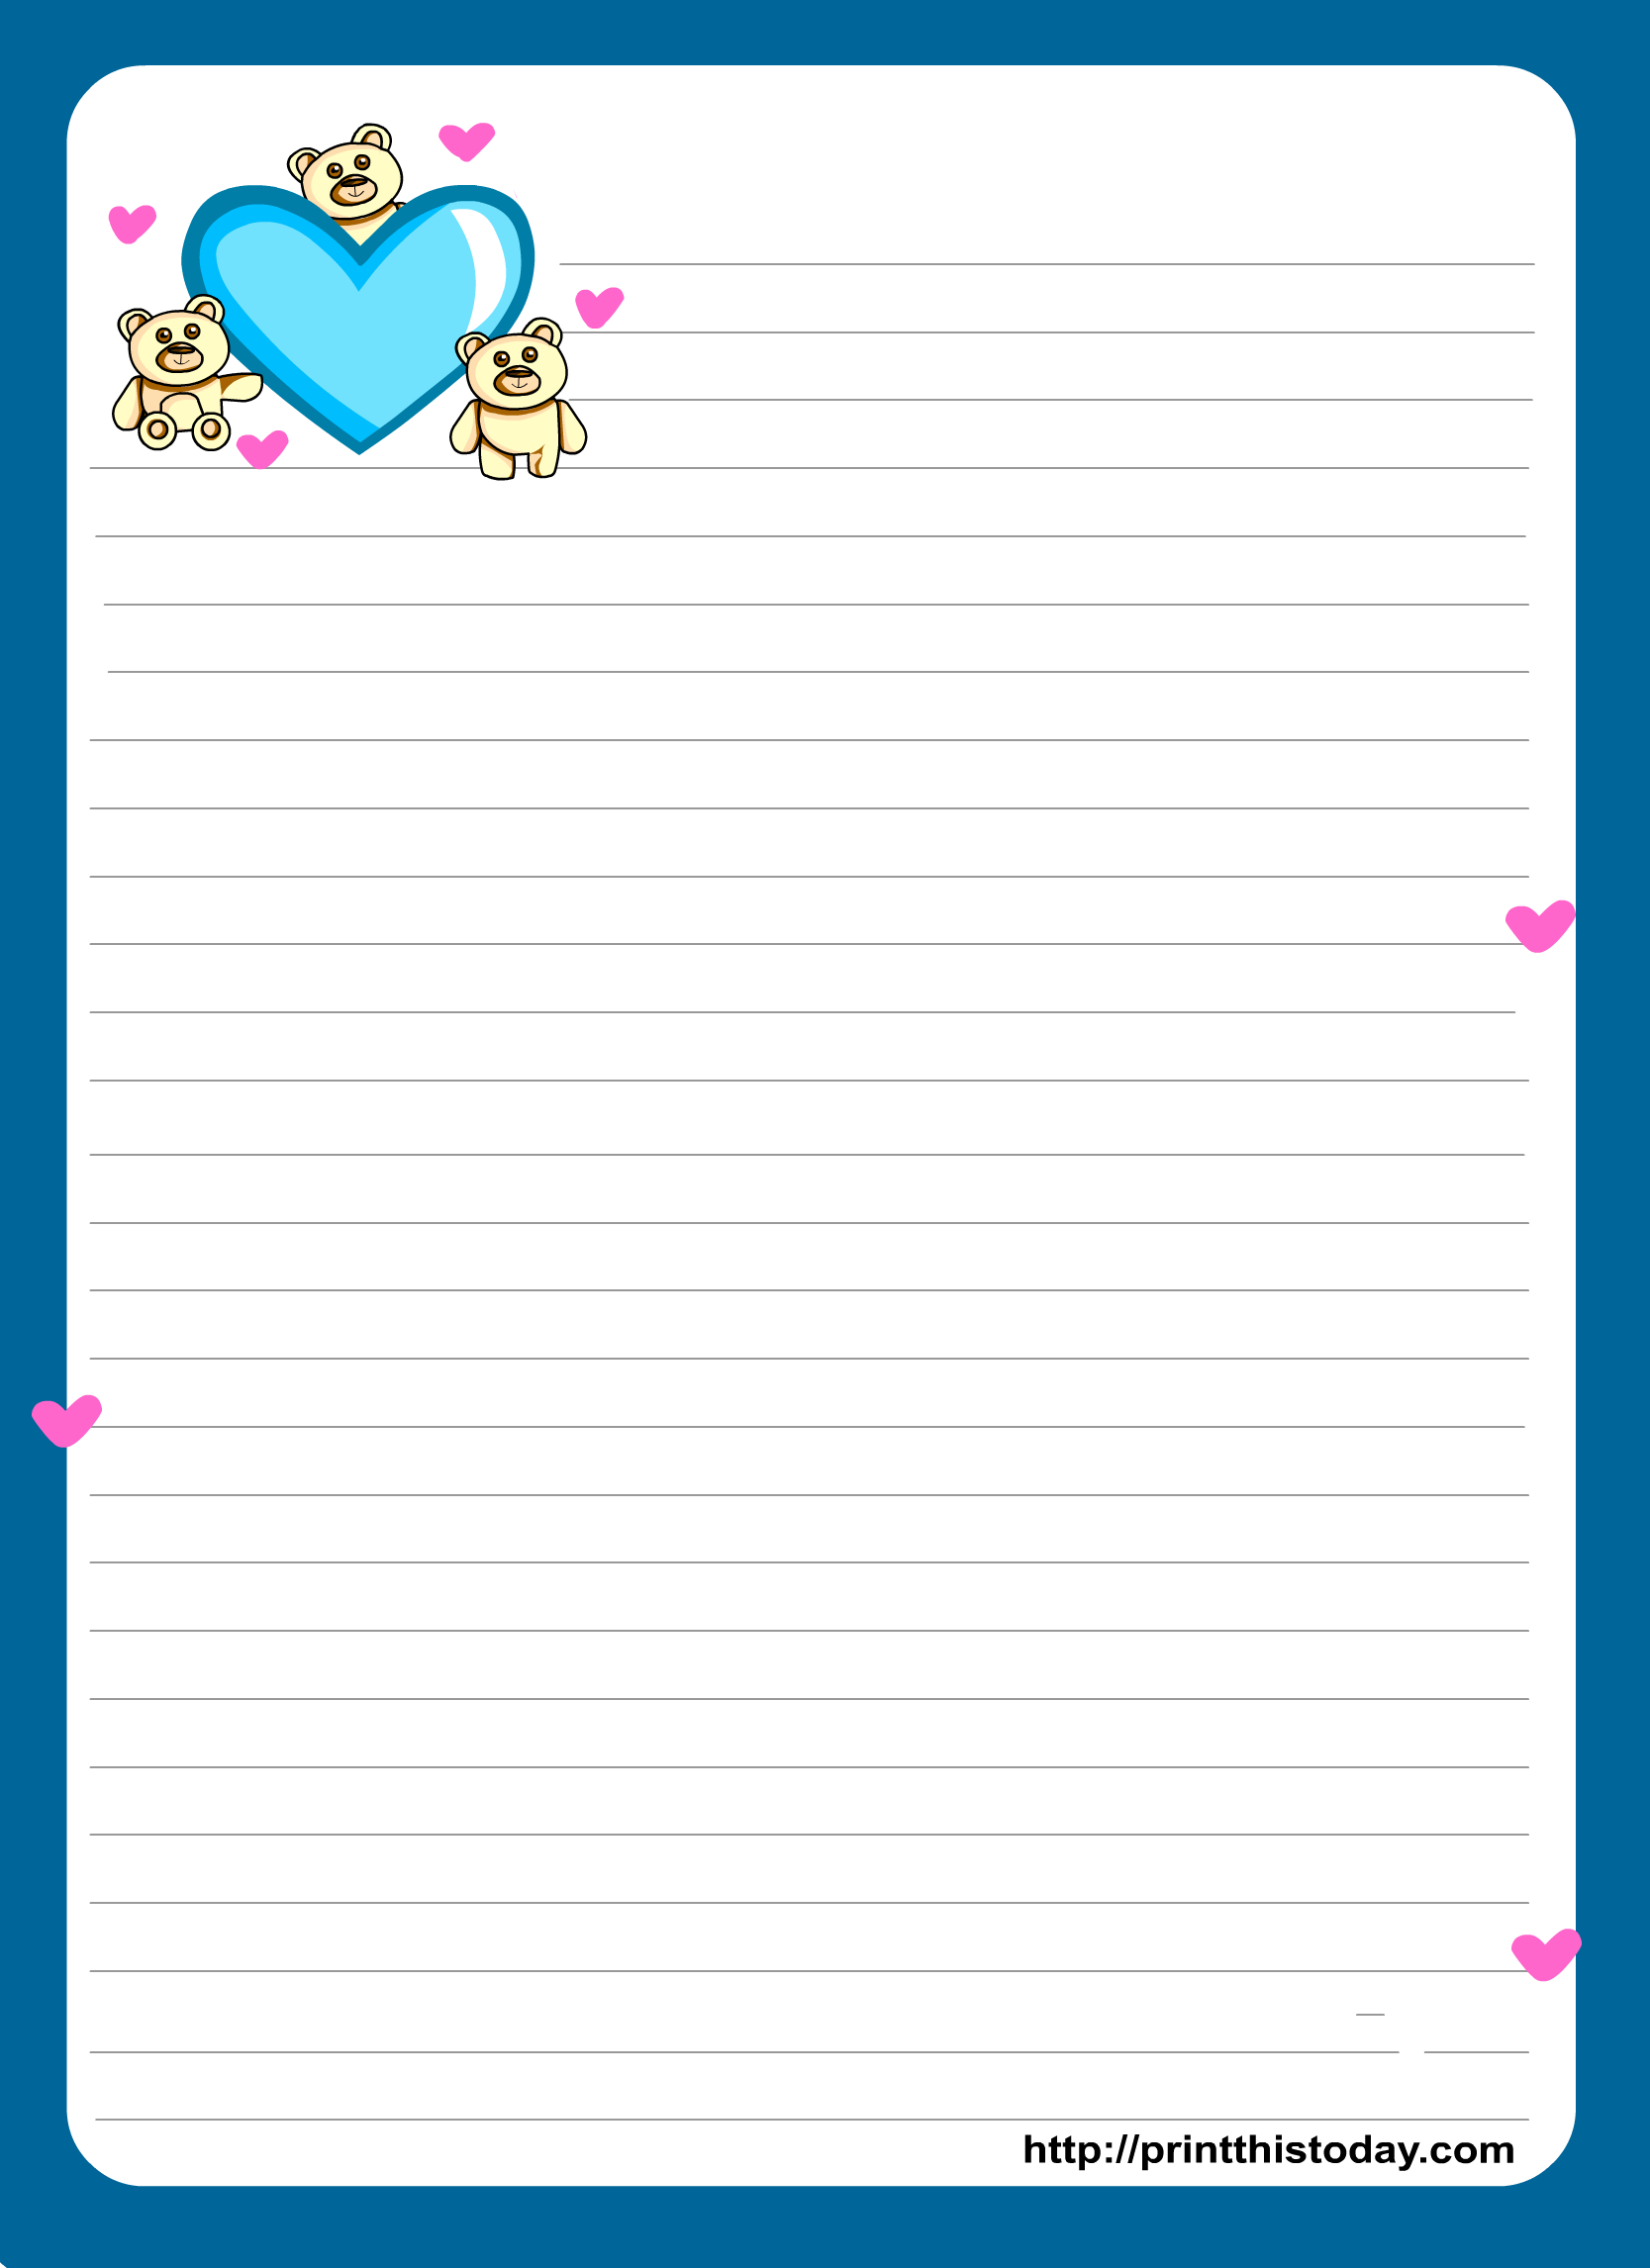 Miss You Love Letter Pad Stationery   Lined Stationery   Free - Free Printable Love Letter Paper